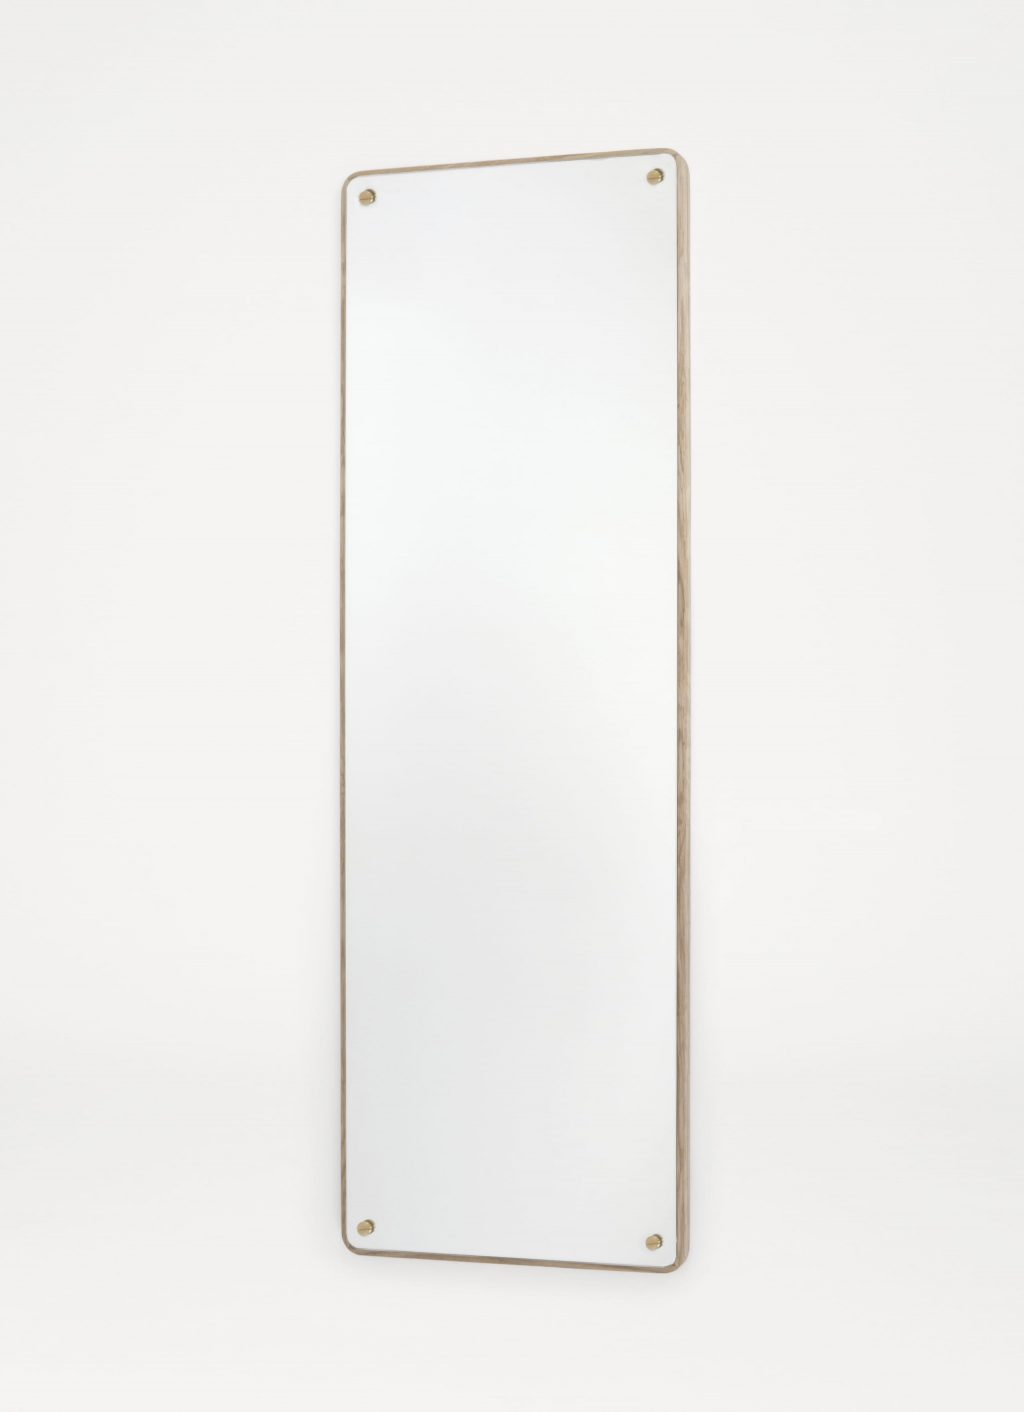 Frama - RM 1 - Rectangular Mirror - Large